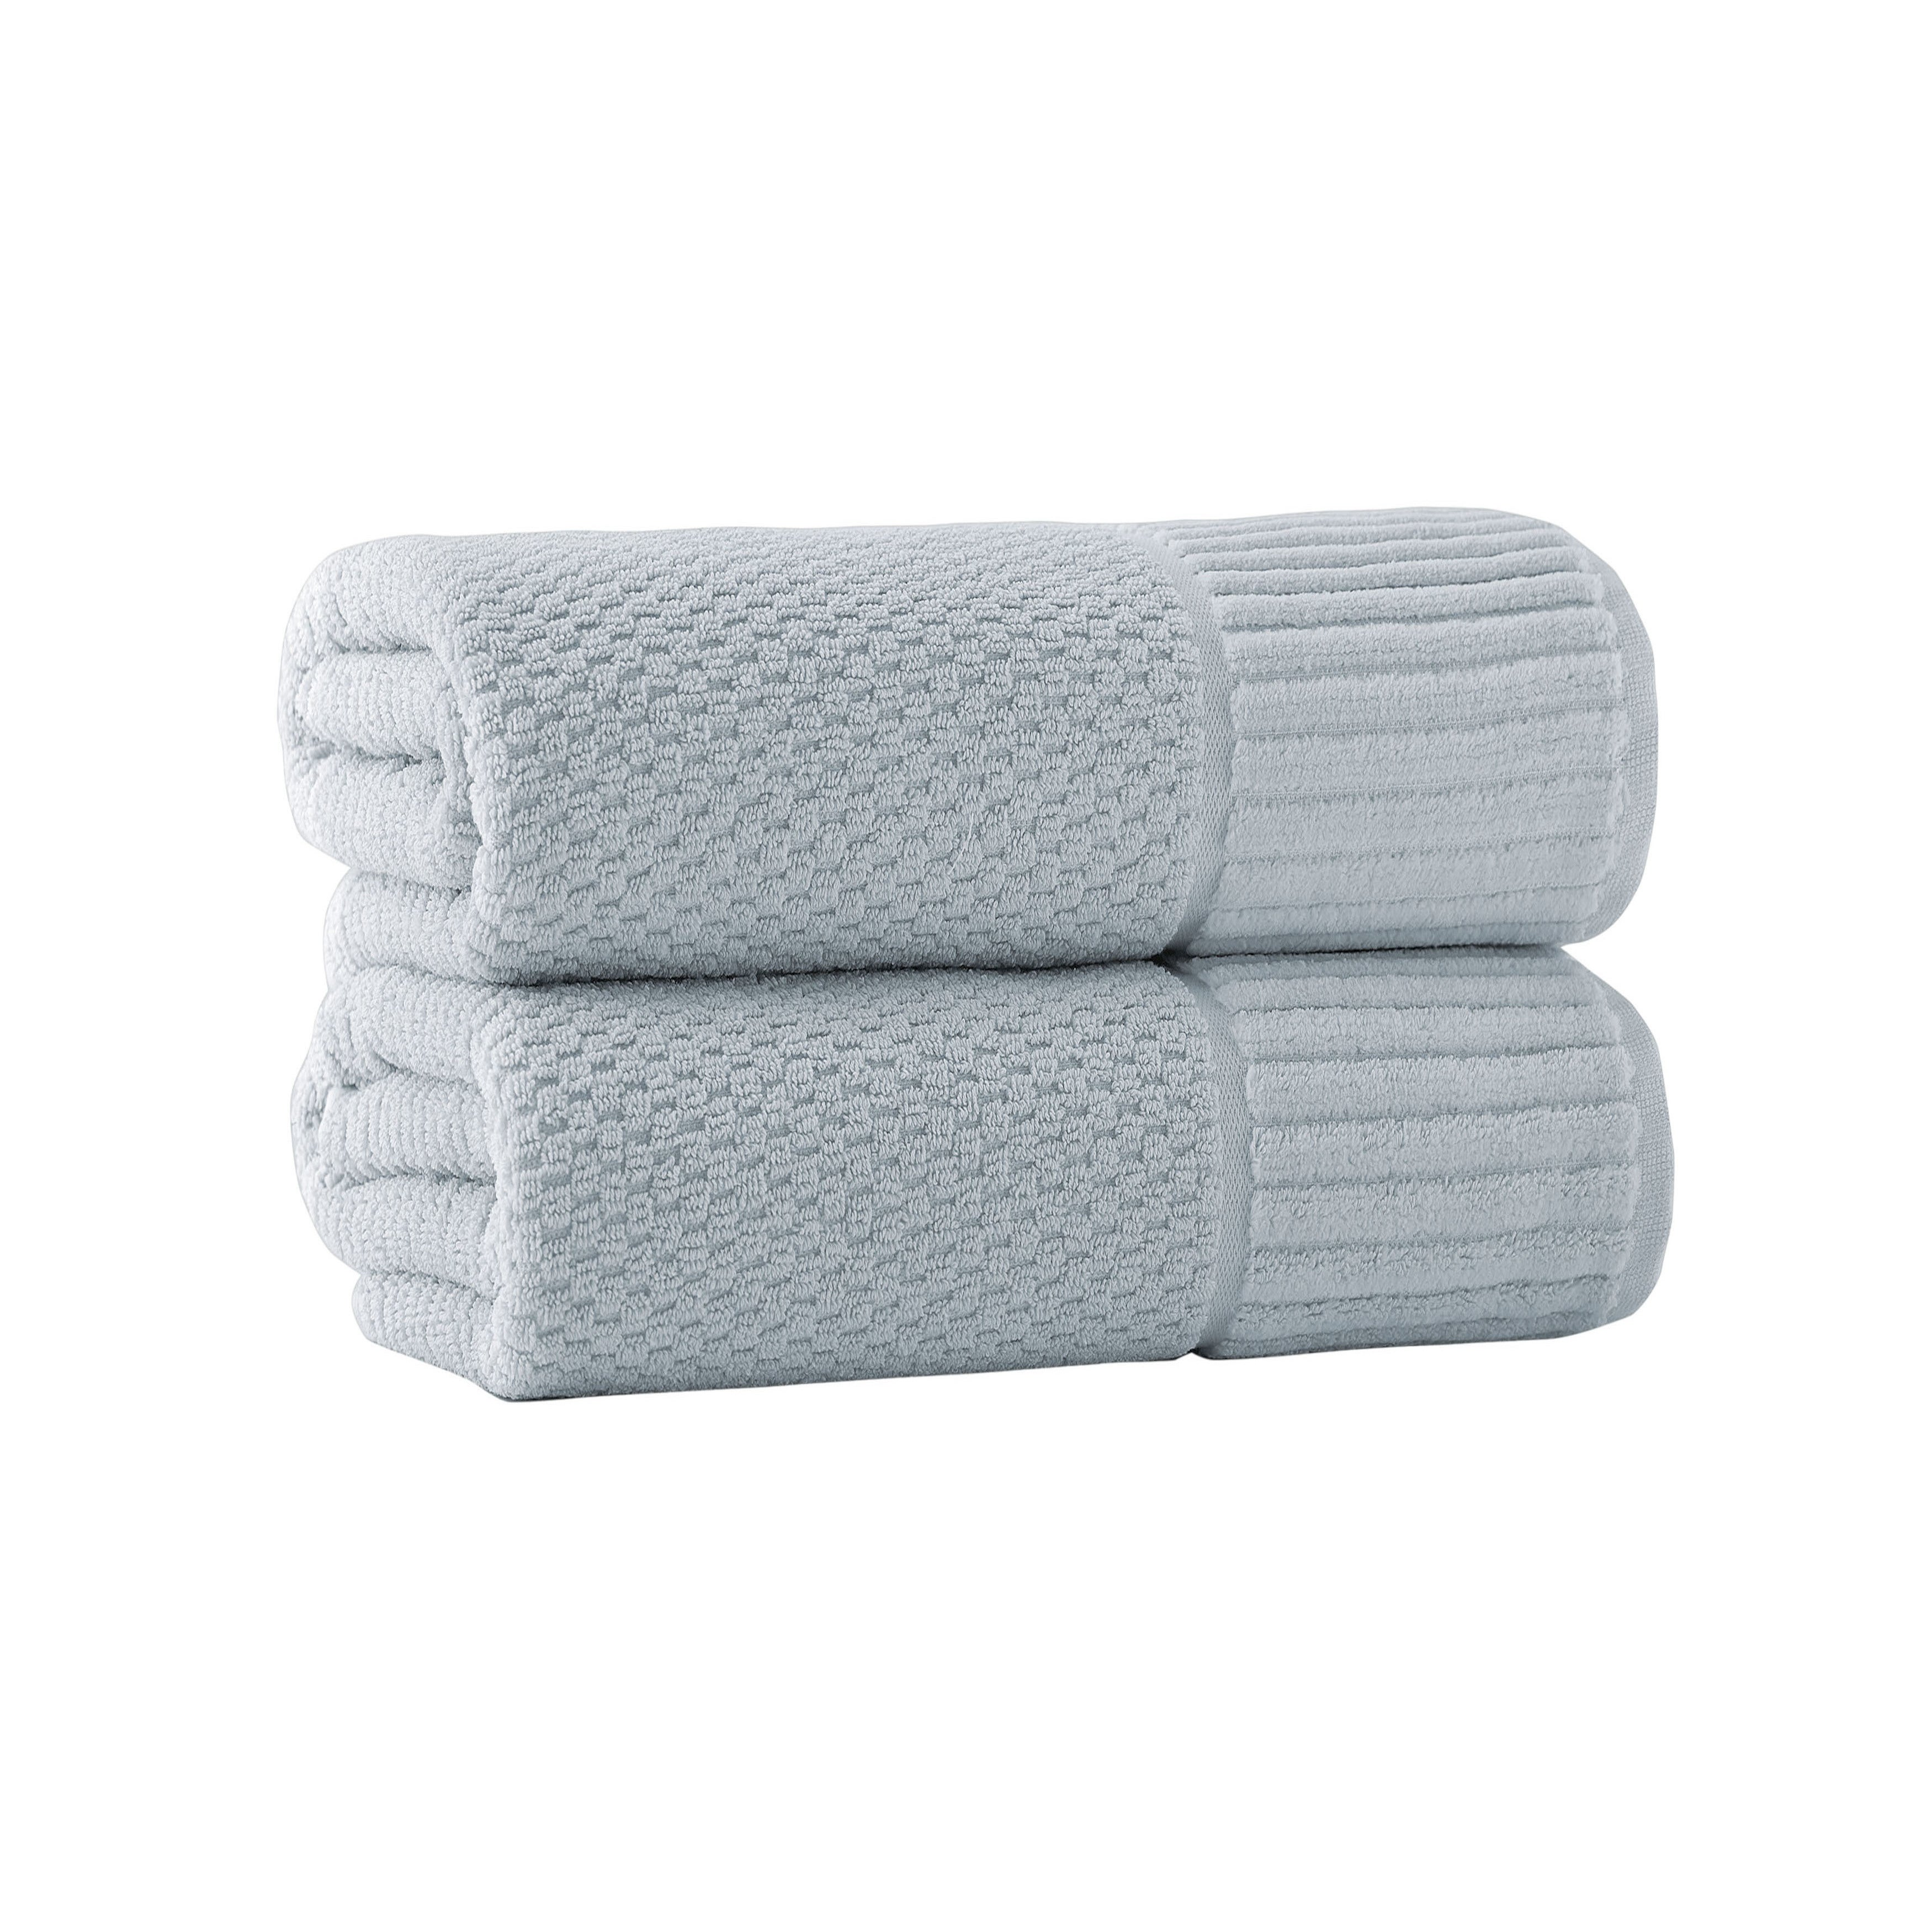 thumbnail 25 - The-Gray-Barn-Scharbauer-Bath-Towels-Set-of-2